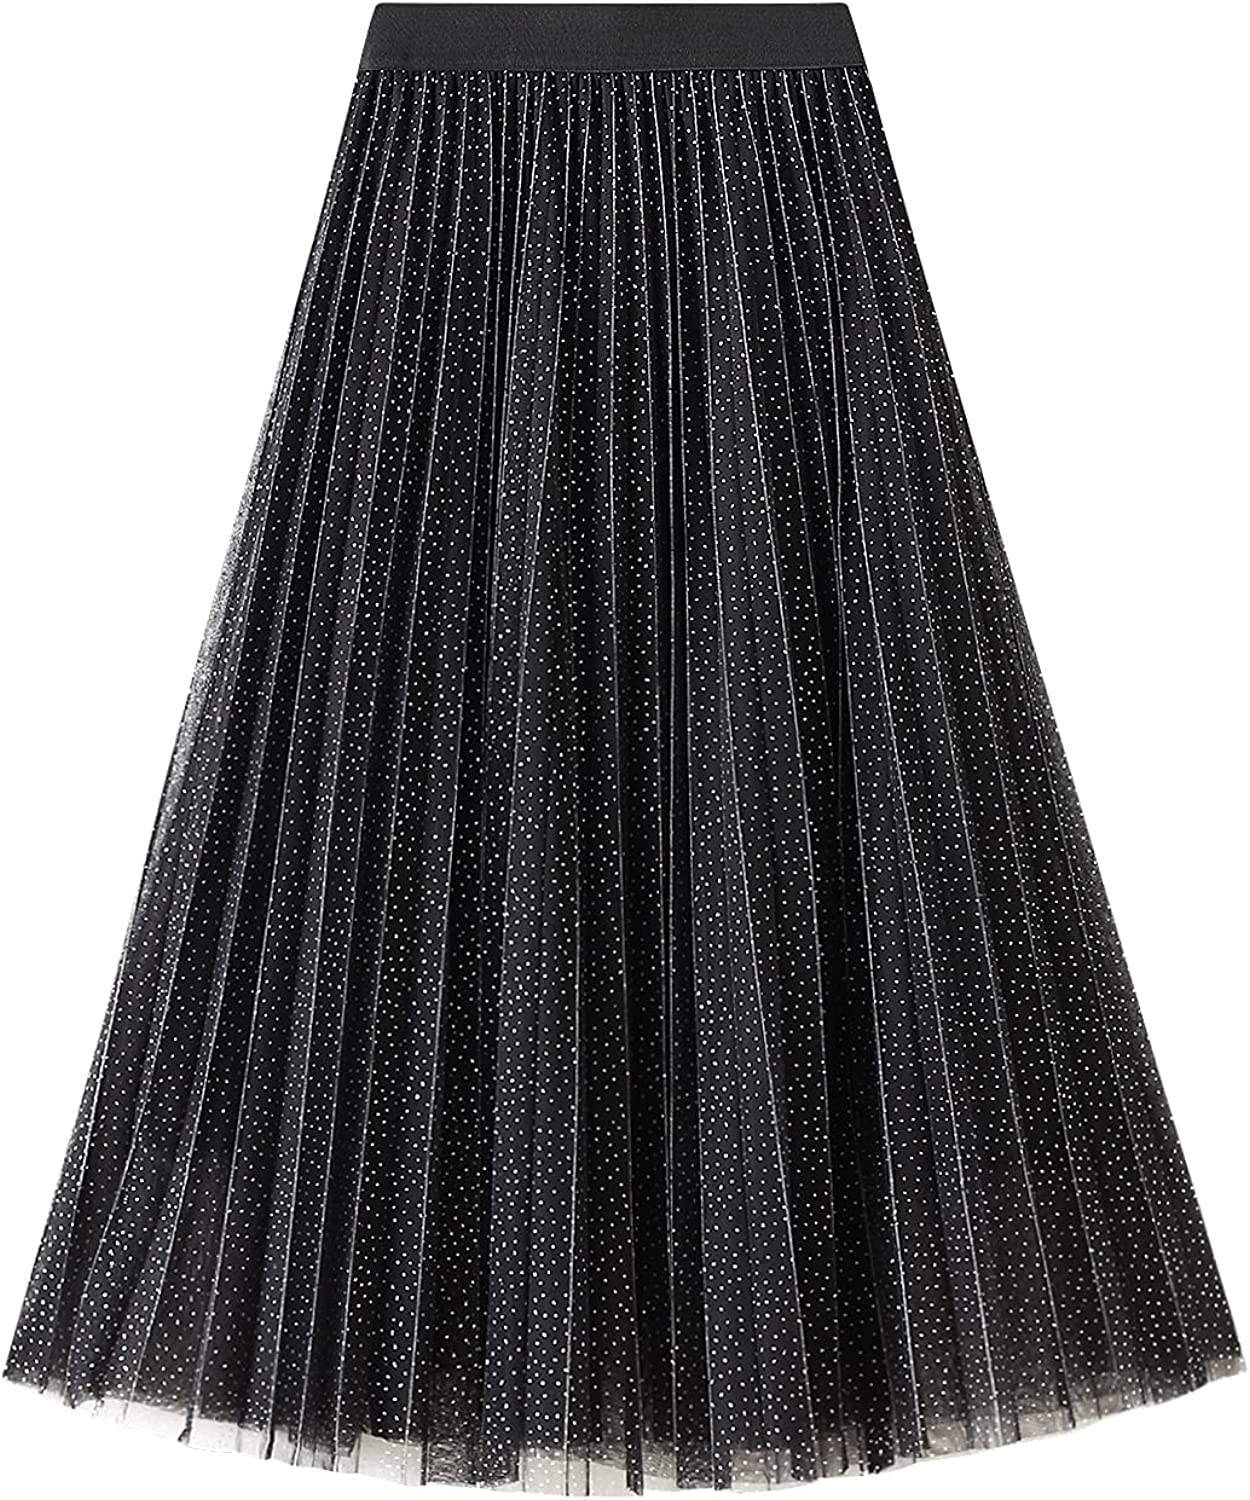 Women Long Pleated Hem Tulle Skirt with Lining High Elastic Waist A Line Skirts for Wedding Party